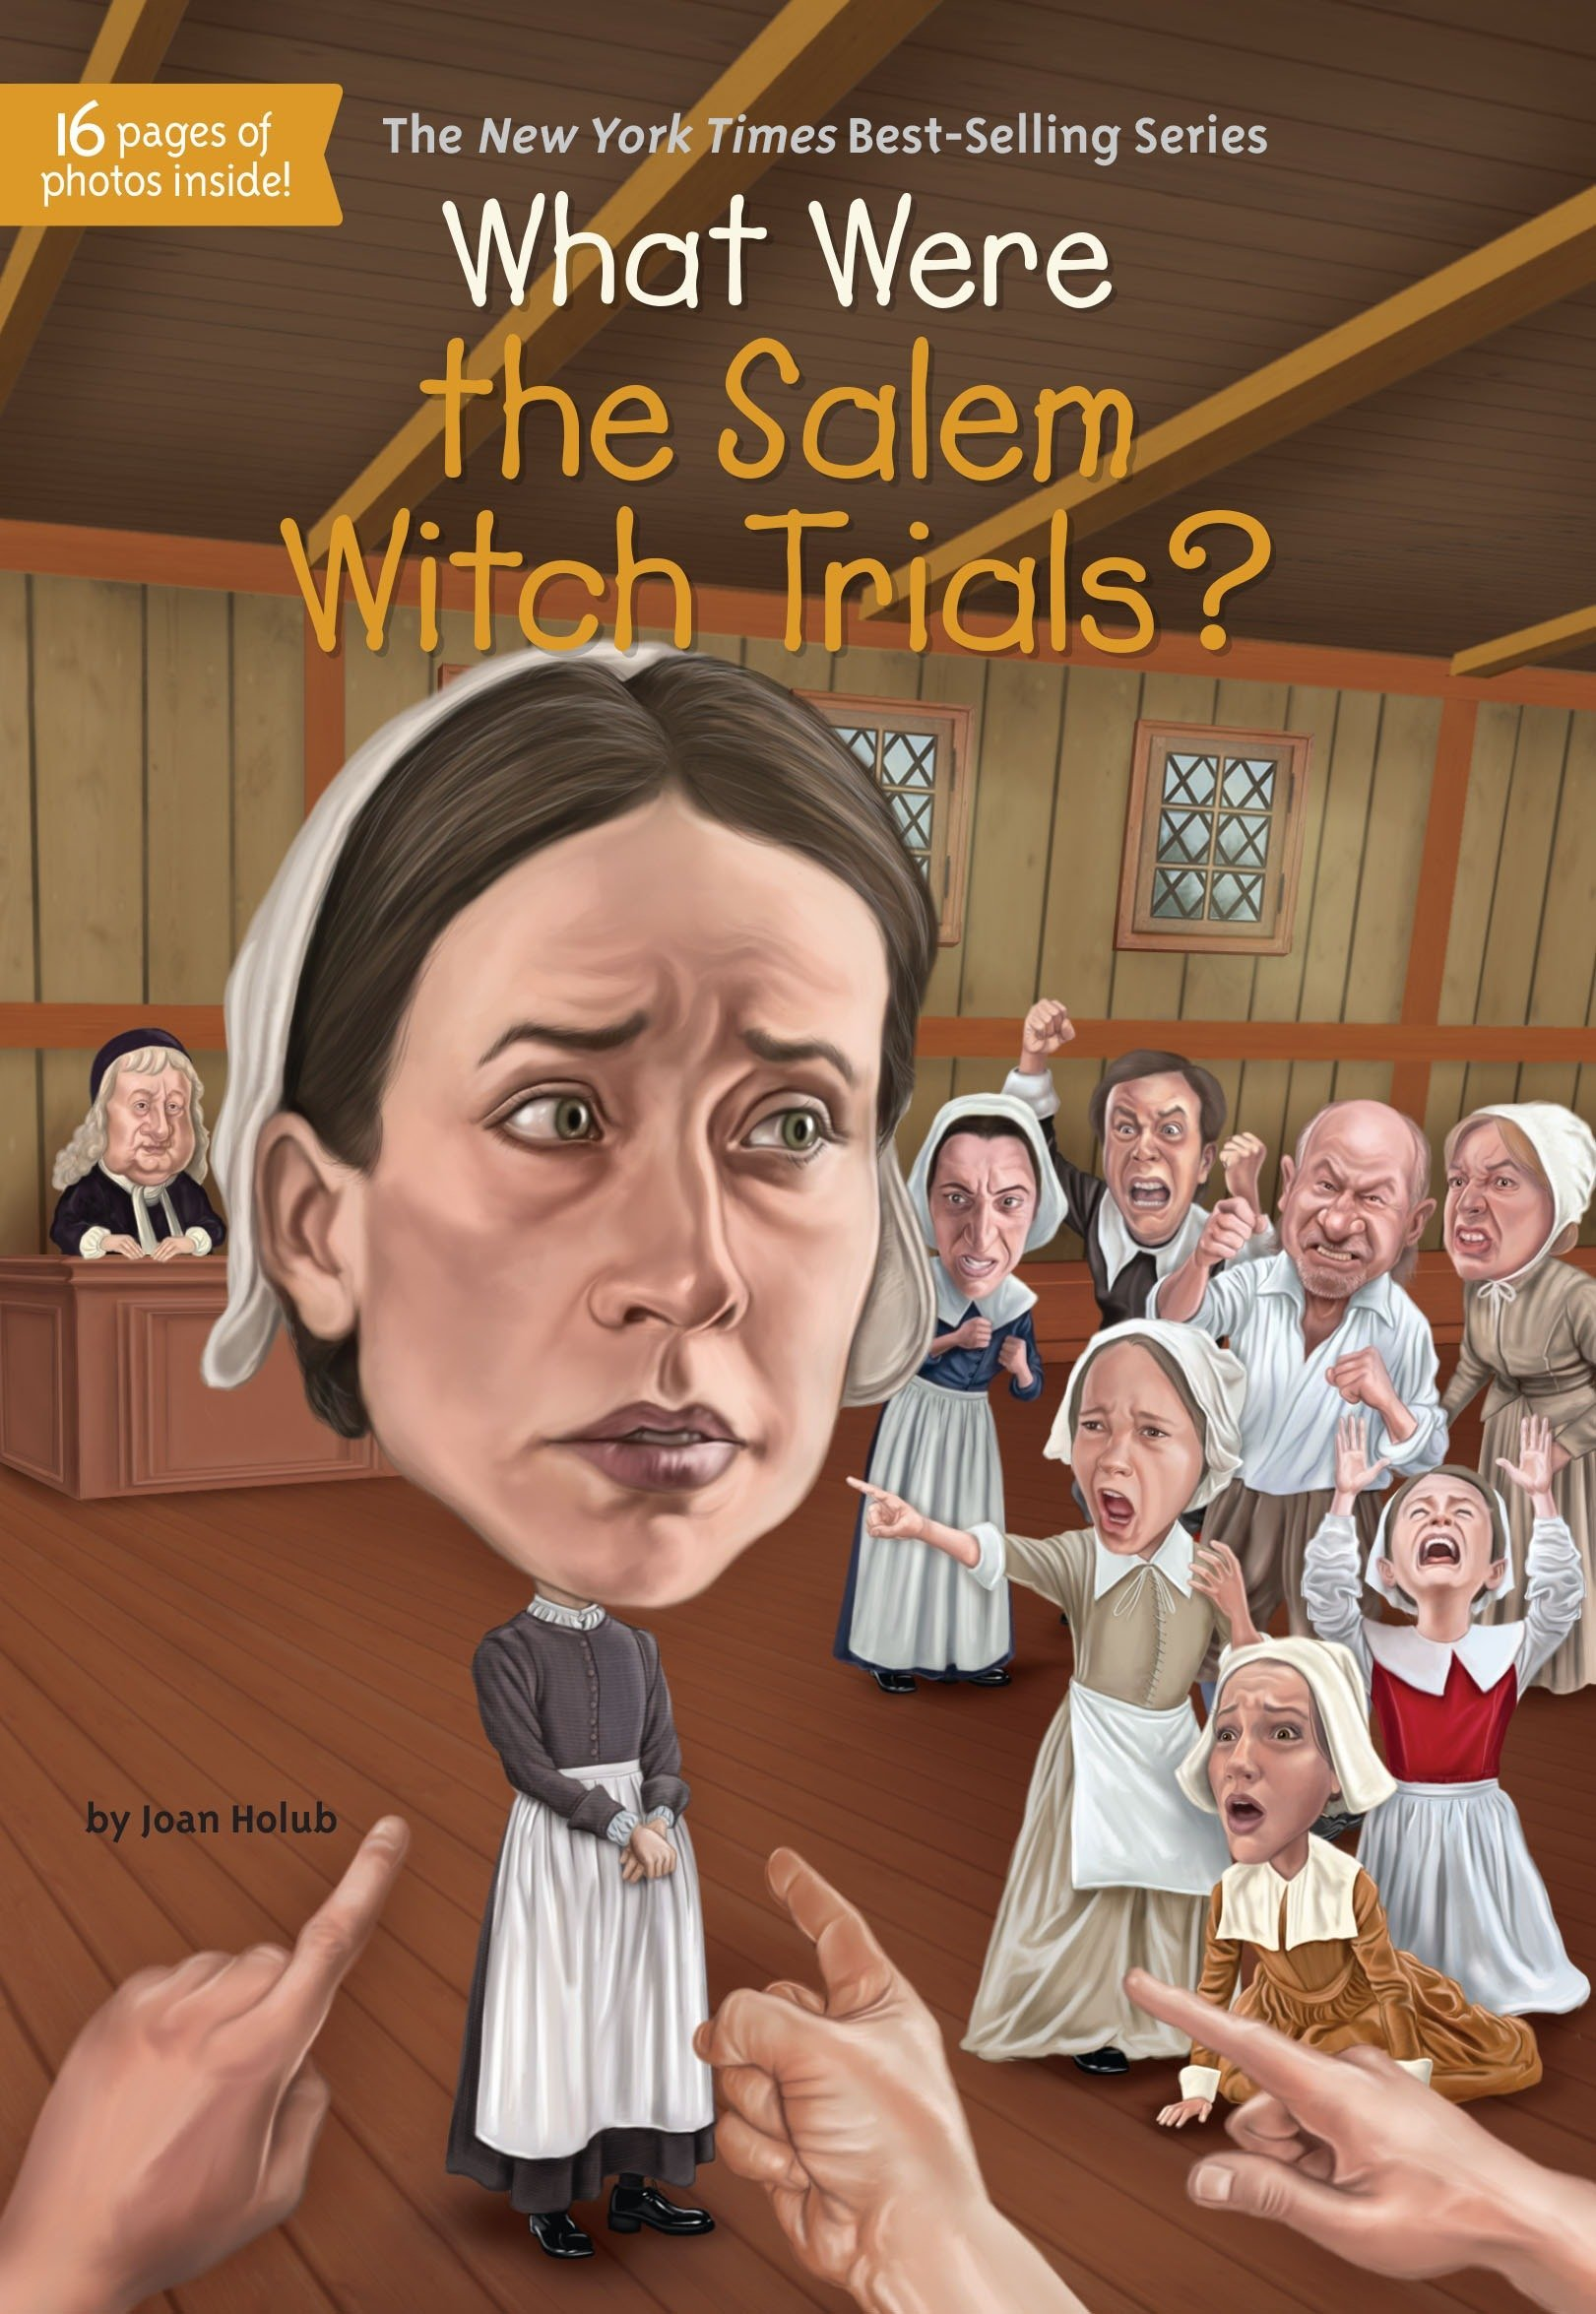 salem when trials were witch